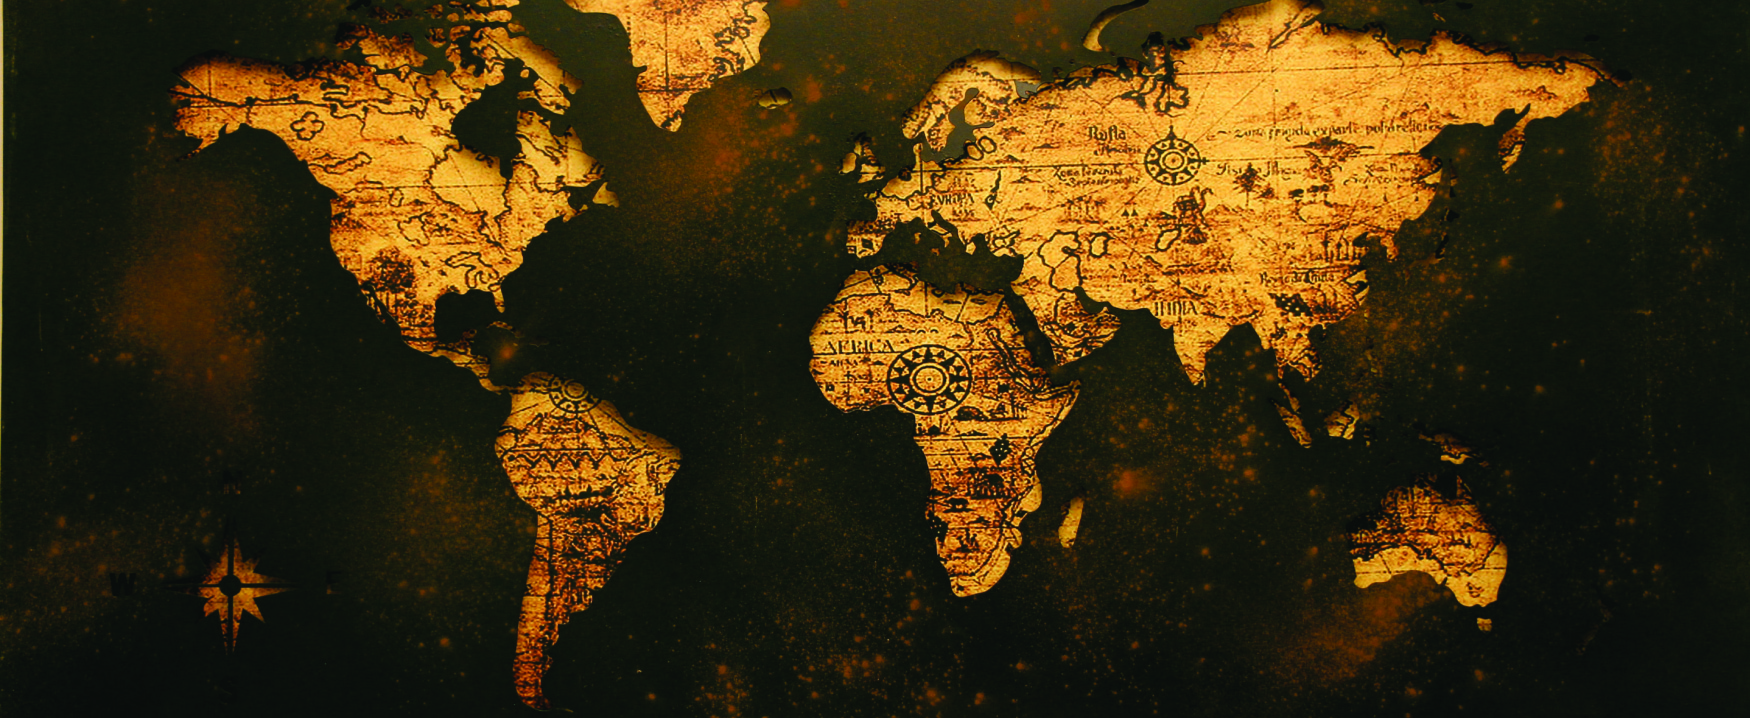 This image shows a map of the world on a dark background with the continents cutout to reveal a lighter color.